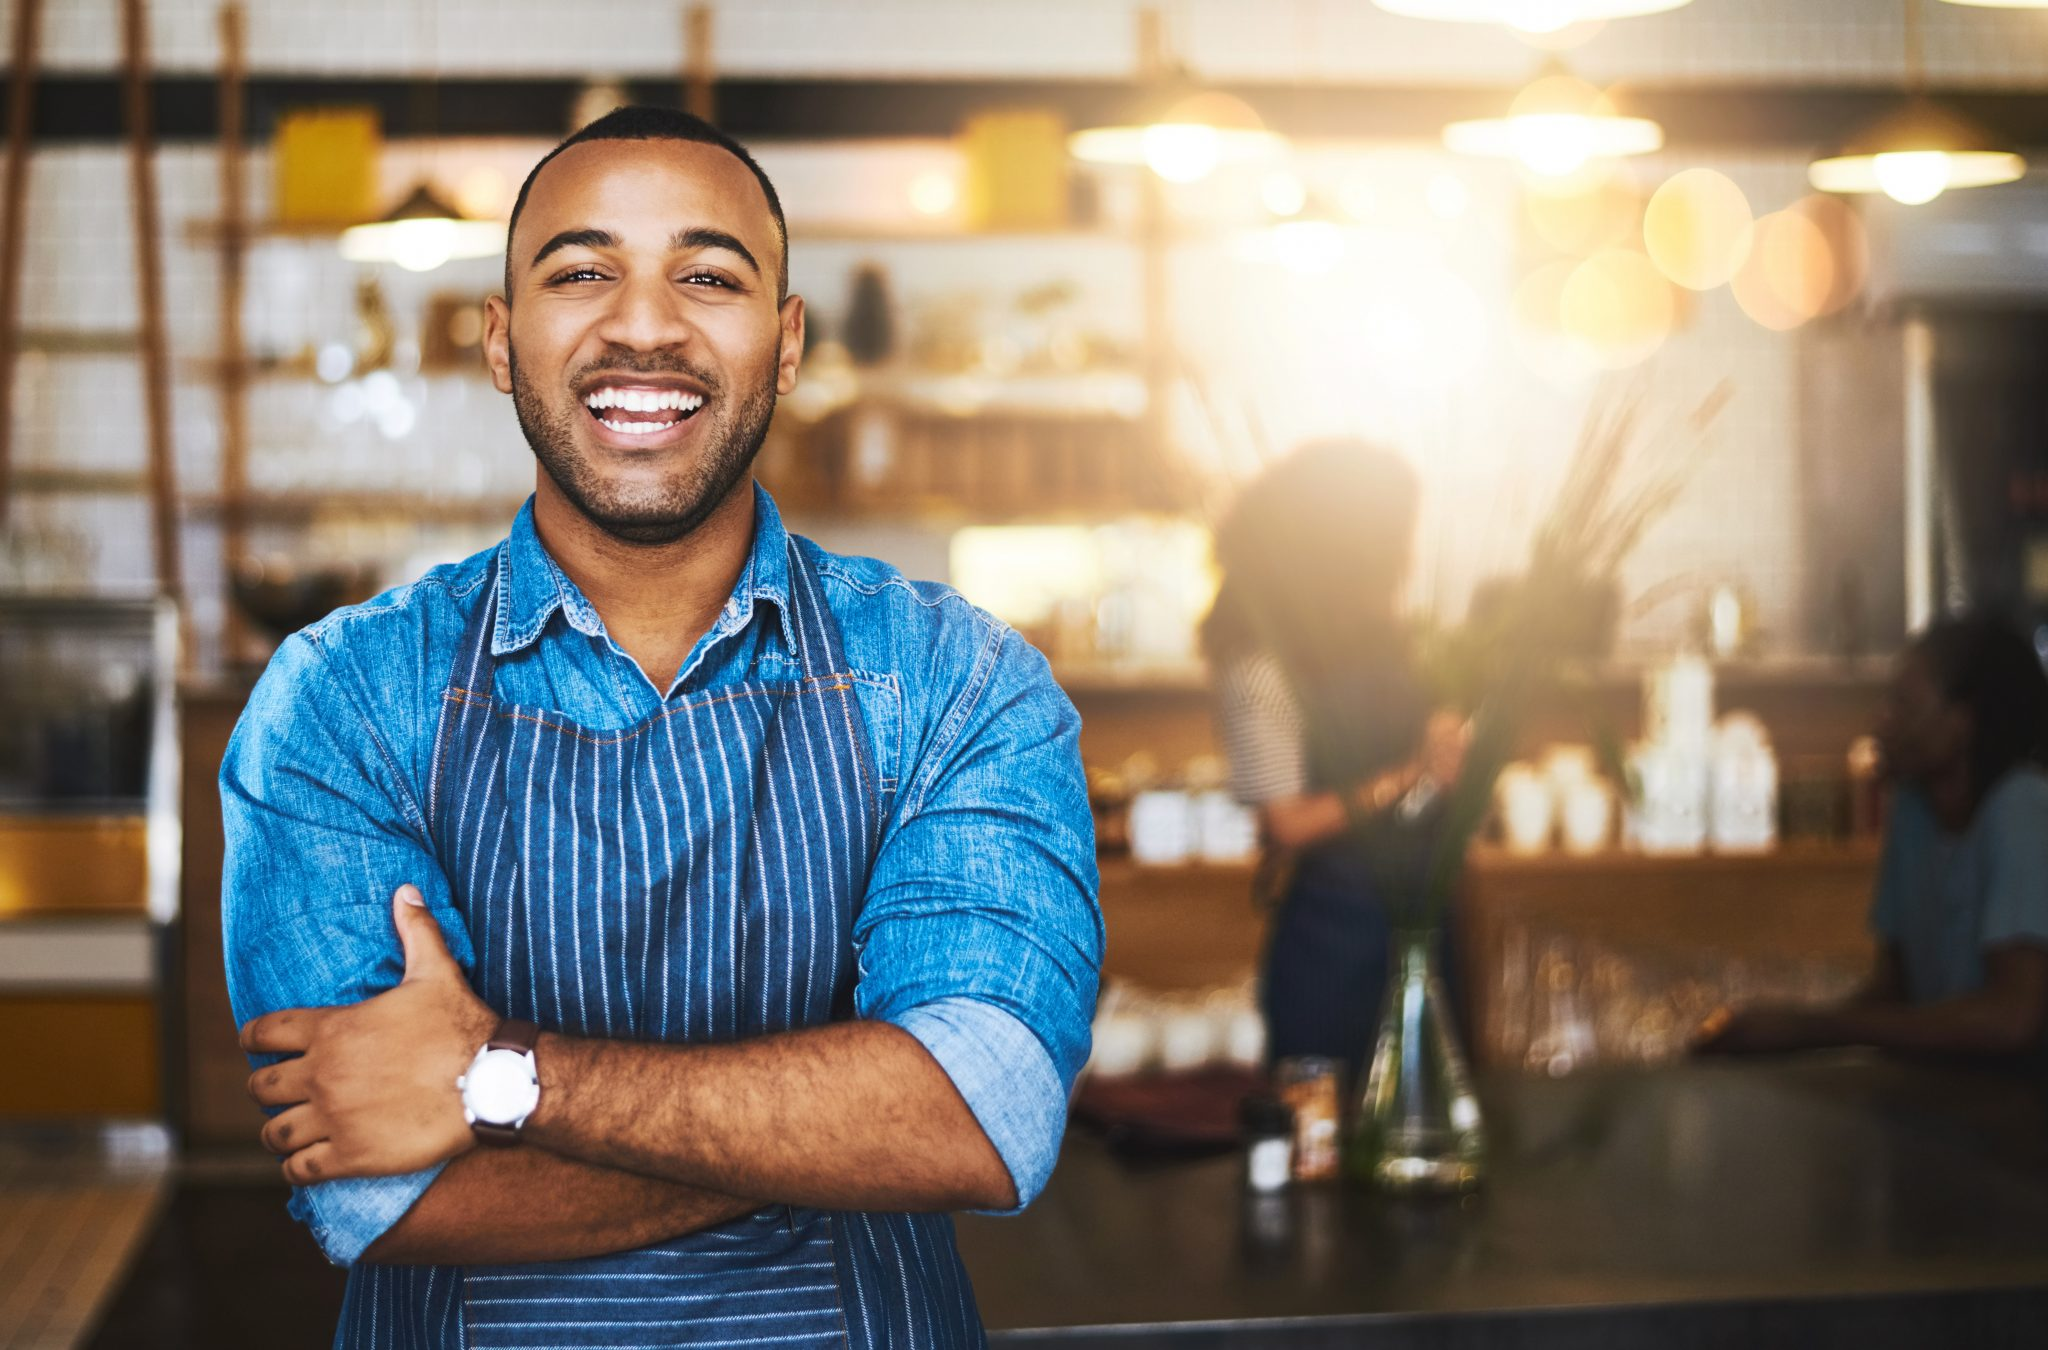 Young black man with an apron on